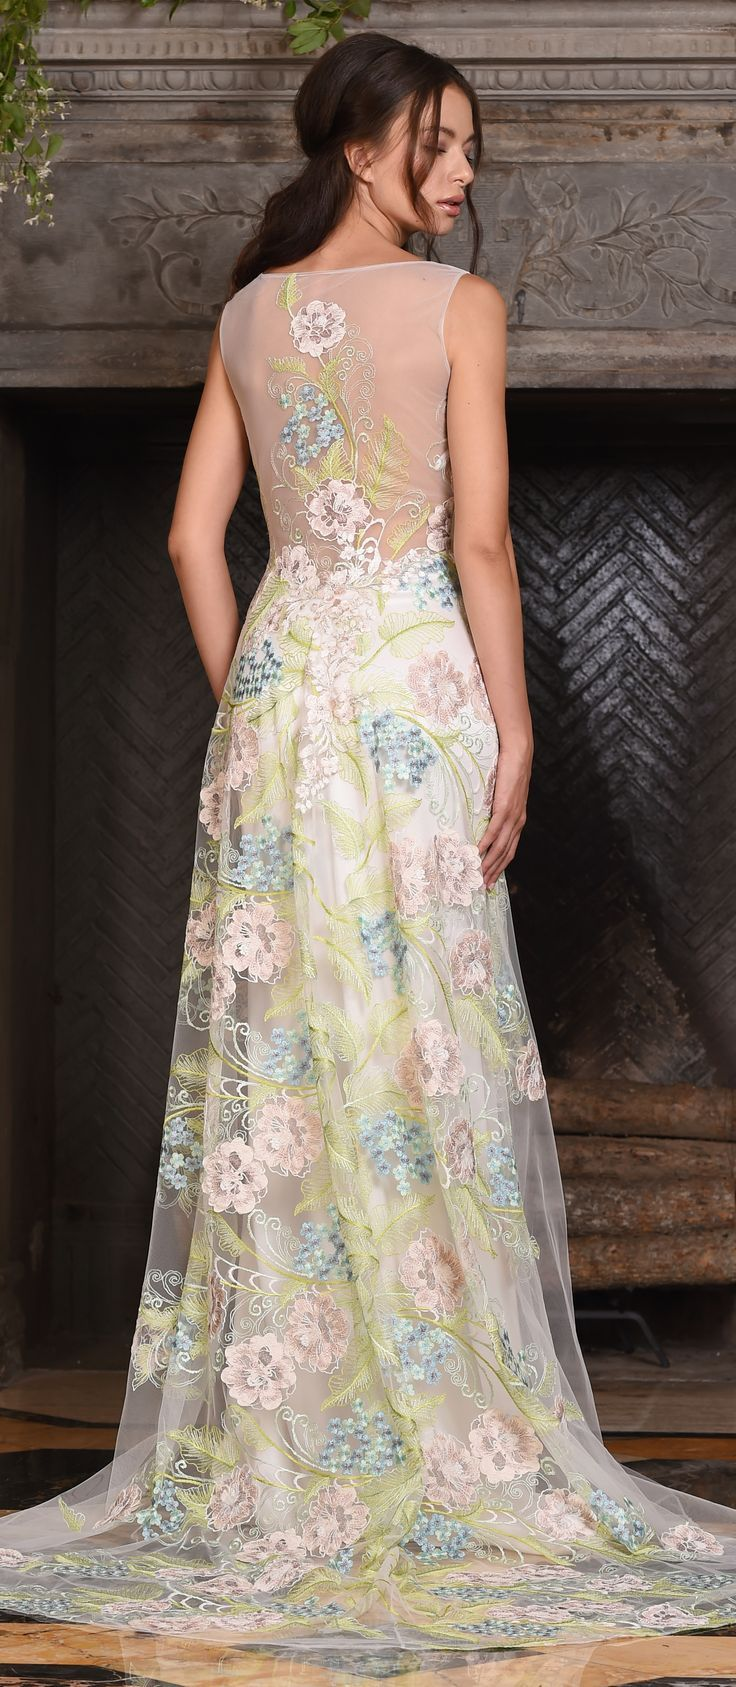 The 24 best CLAIRE PETTIBONE images on Pinterest | Wedding frocks ...